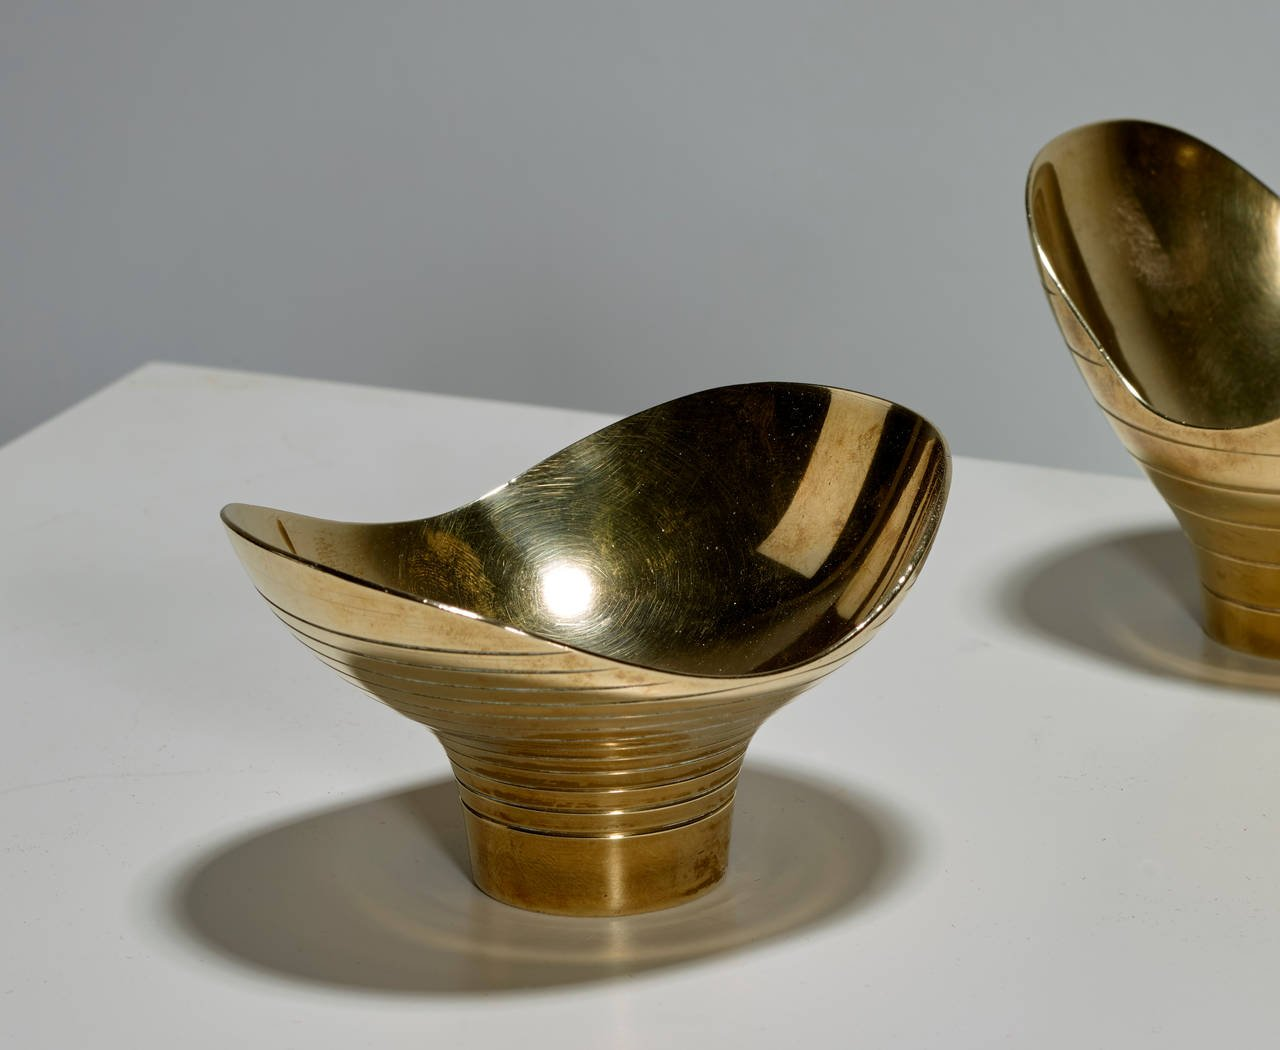 Paavo Tynell, Taito Oy, Bowl, 1940s - The Exchange Int